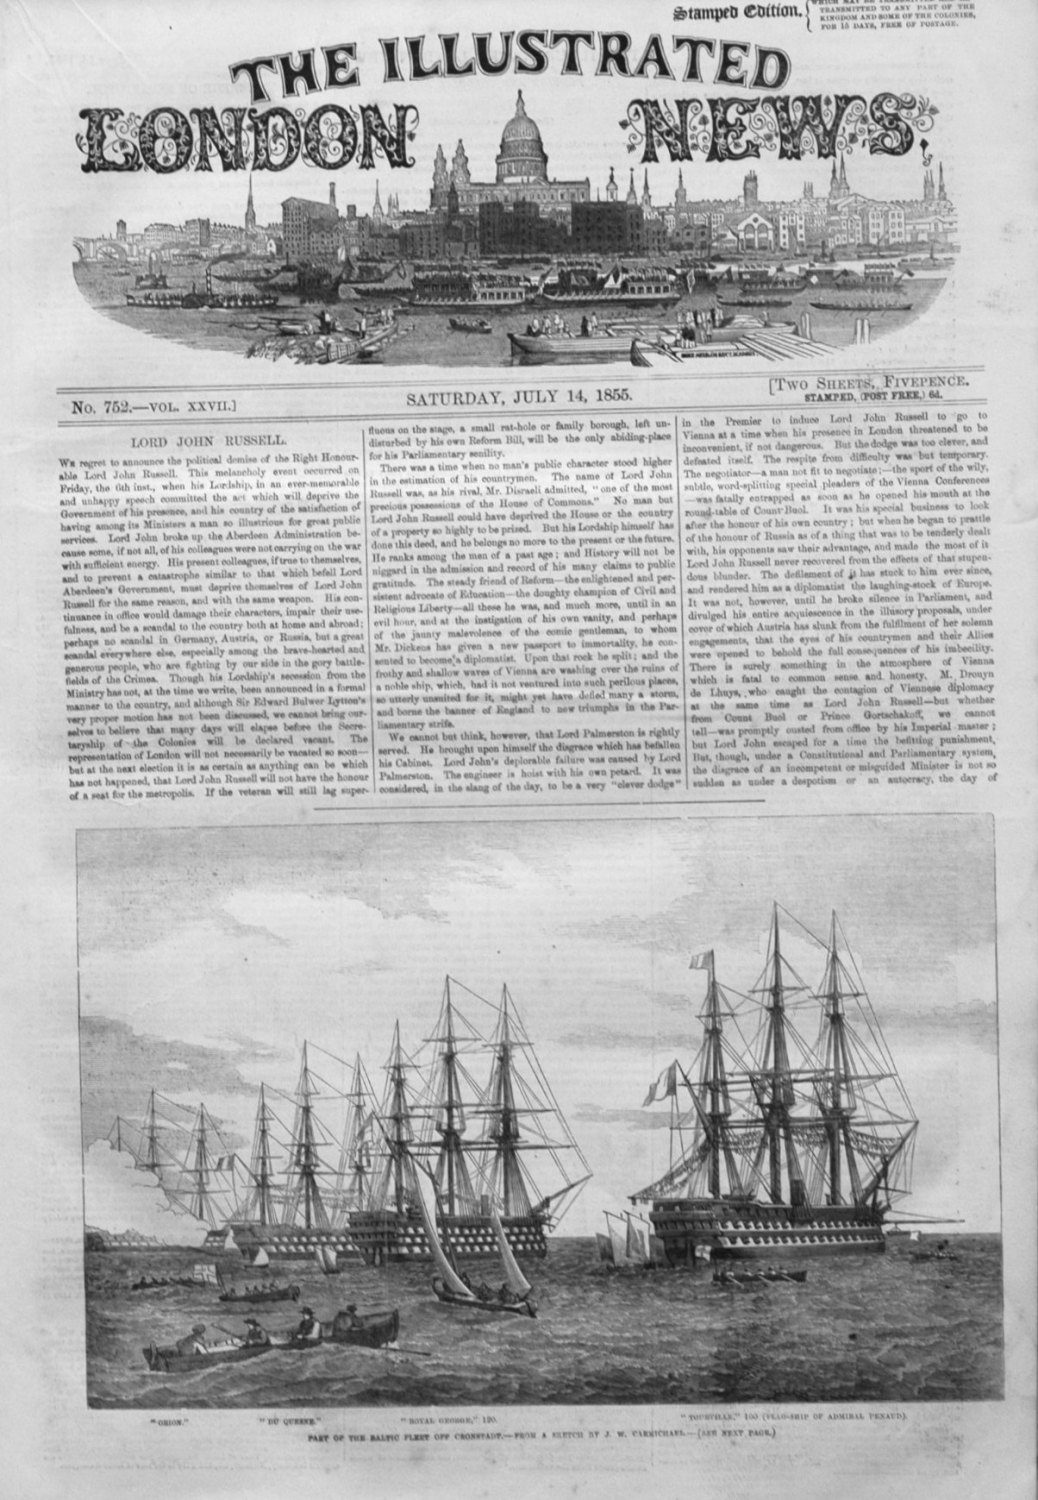 Illustrated London News & Supplement for July 14th 1855.